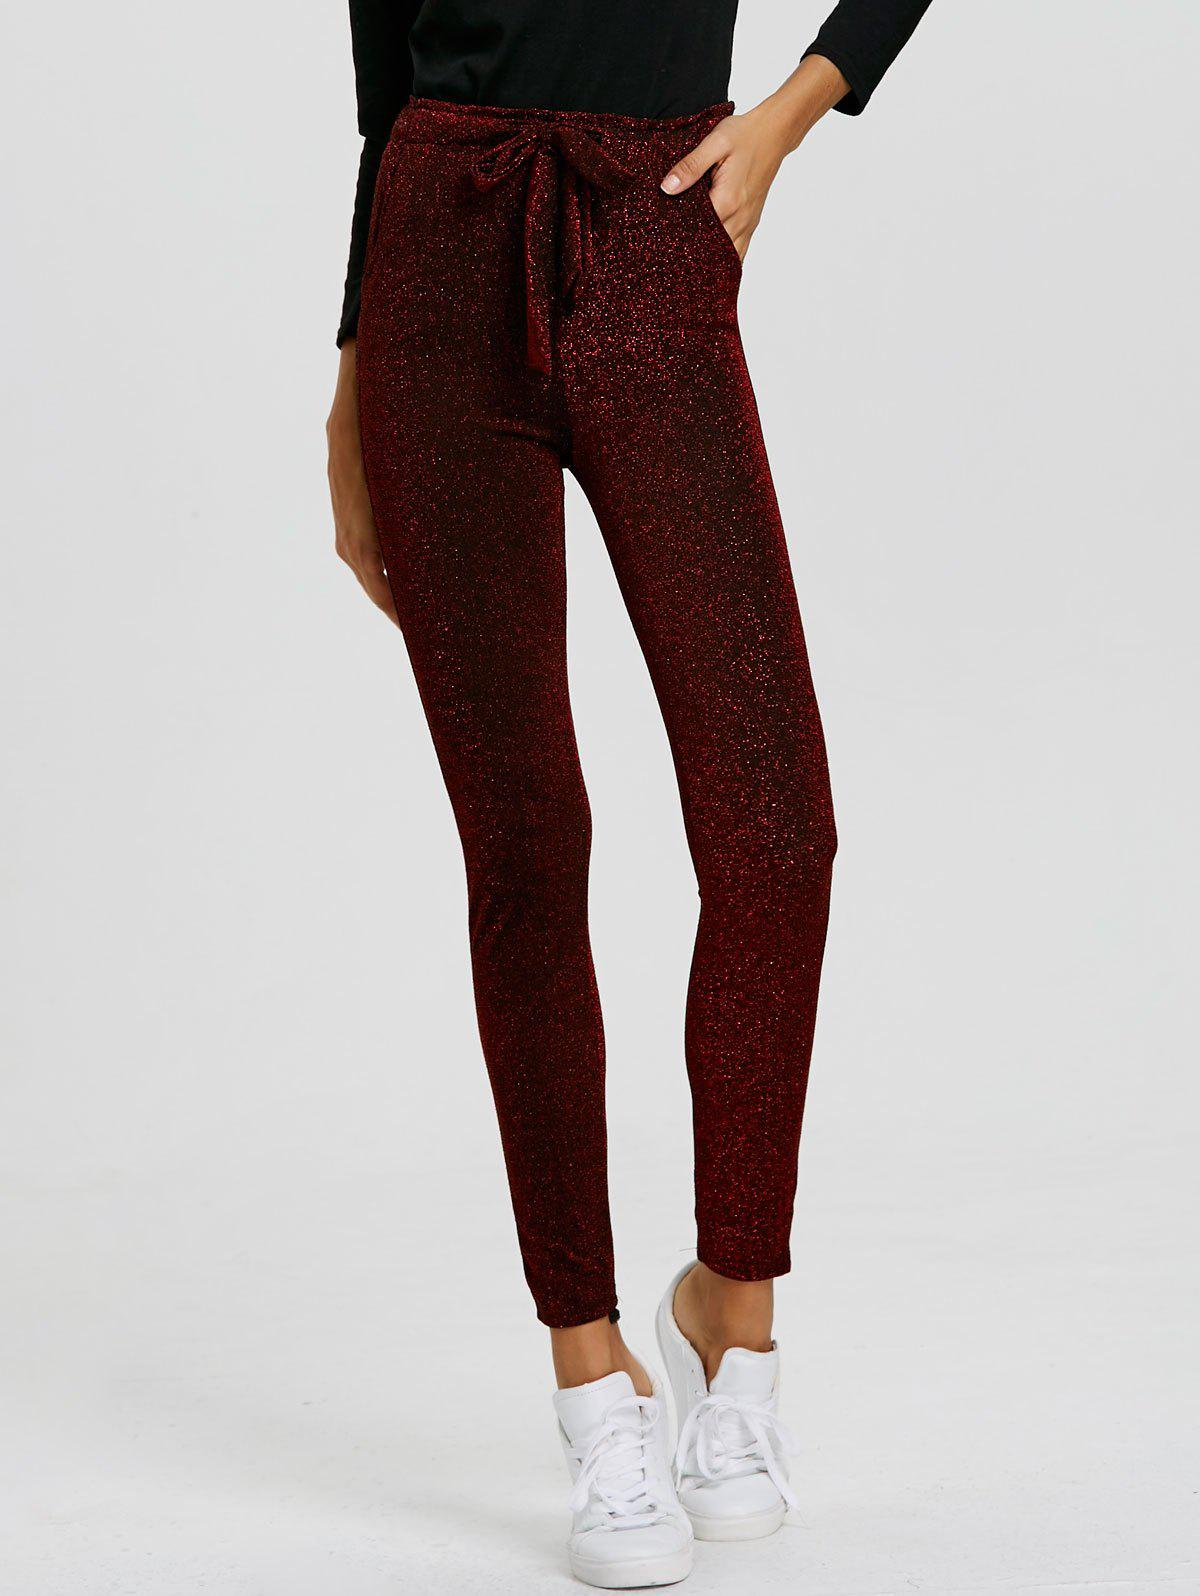 Drawstring Sparkly Skinny Pants - WINE RED S